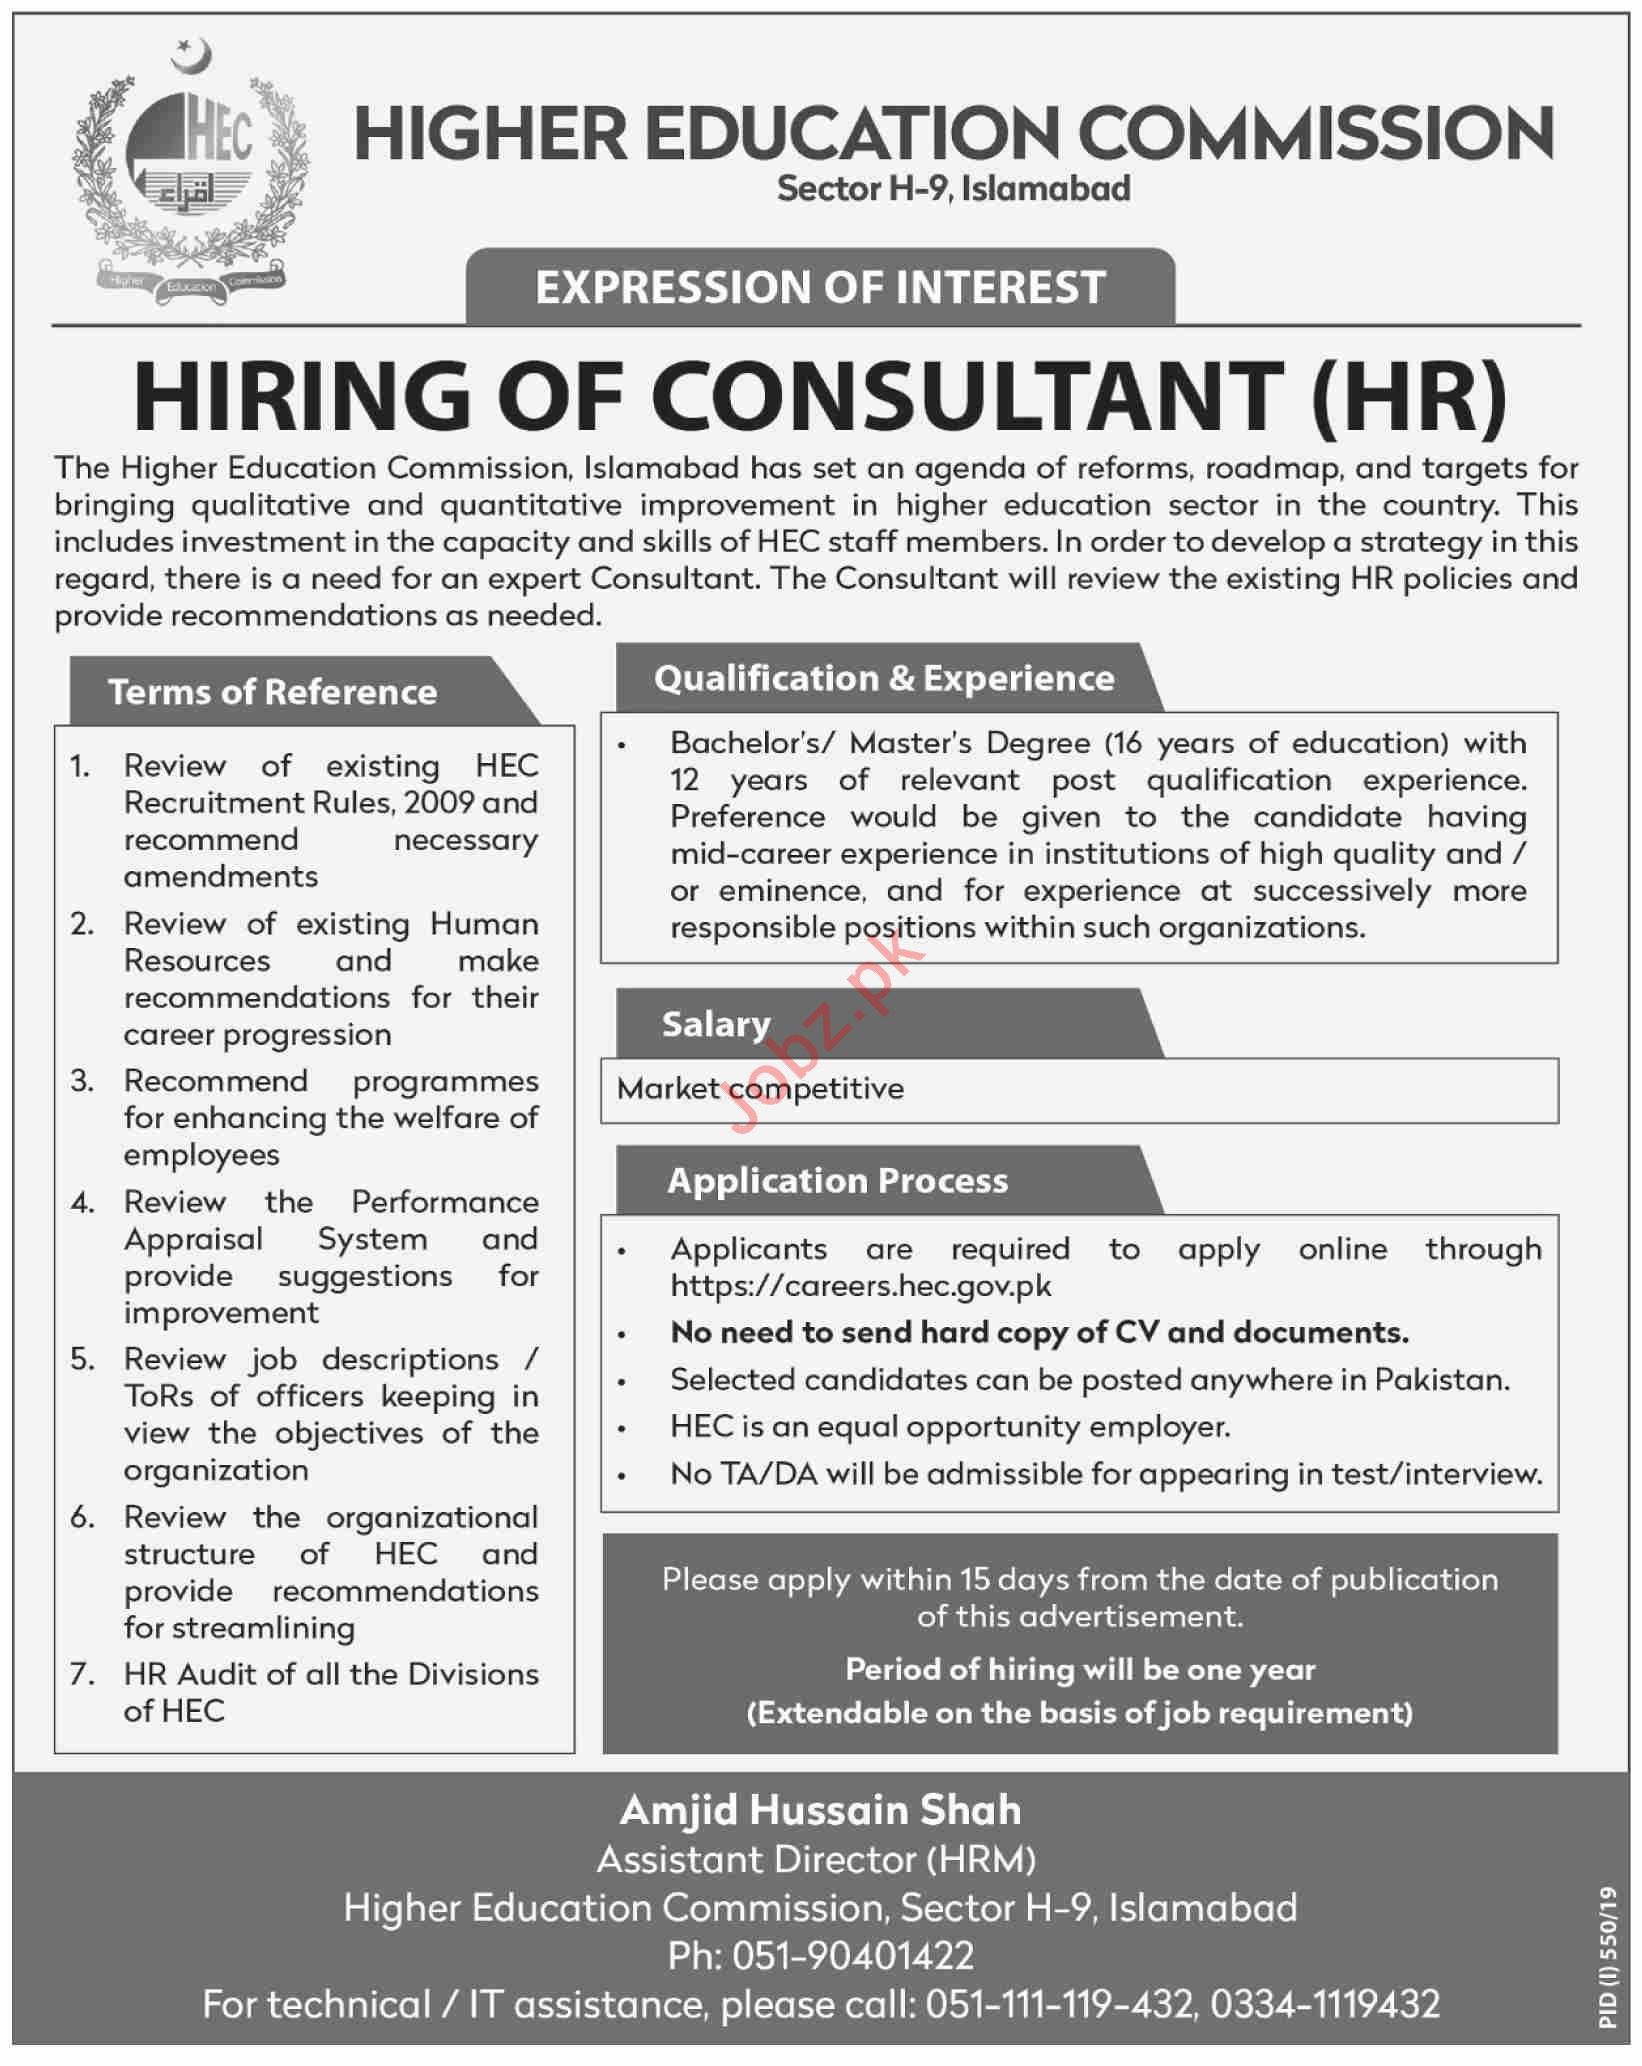 HEC Higher Education Commission Job For Consultant HR